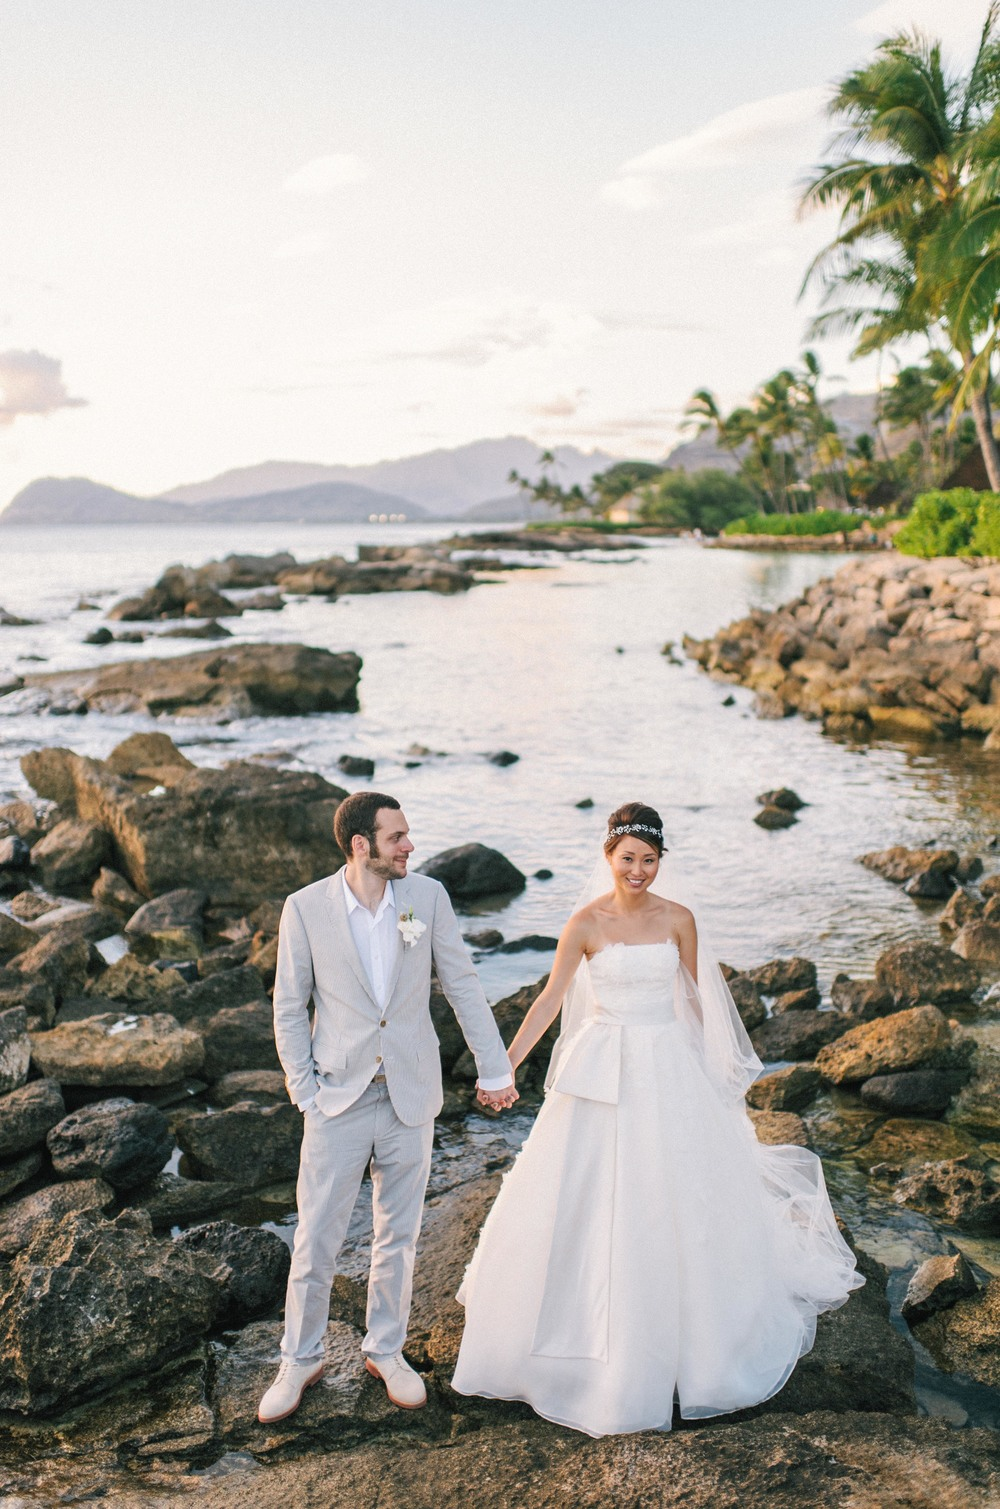 Michelle Garibay Events | Modern Vintage Hawaii Wedding | Oahu Destination Wedding | Peach and Gray Wedding | Lanikuhonua Beach Sunset